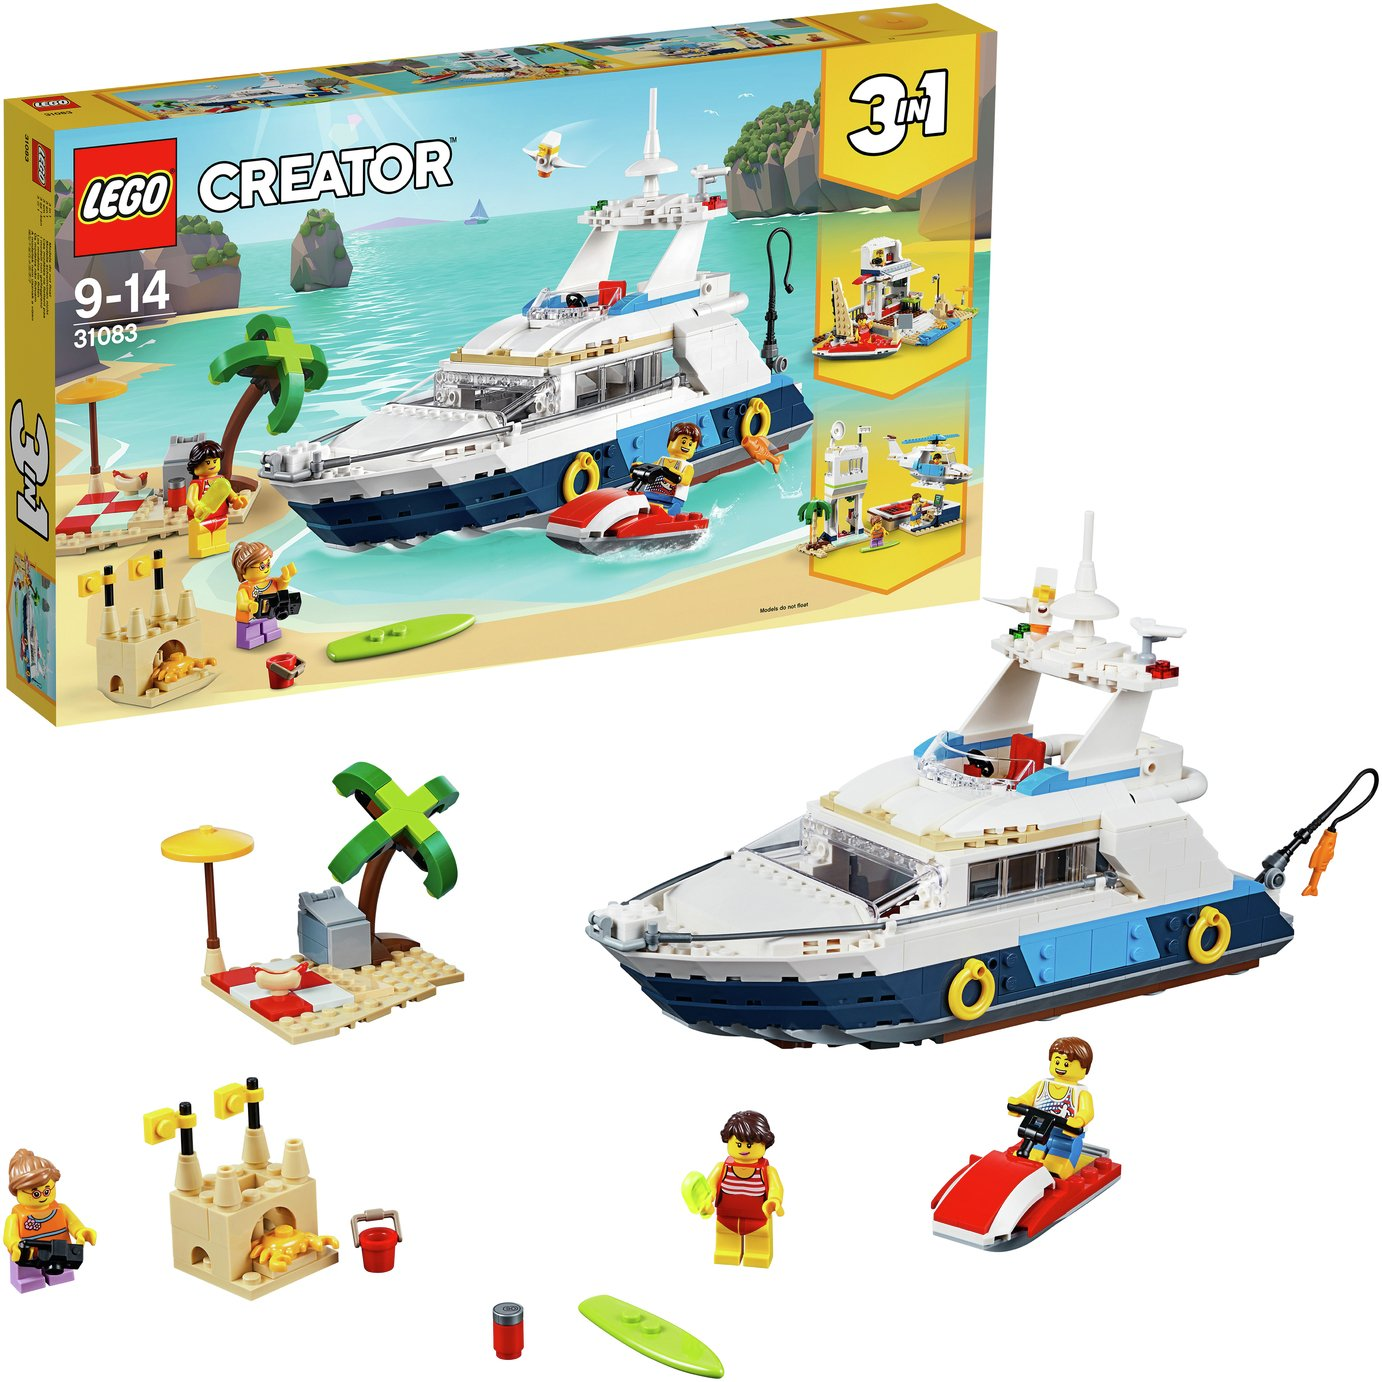 LEGO CREATOR Cruising Adventures 3in1 Model Fun Toy - 31083